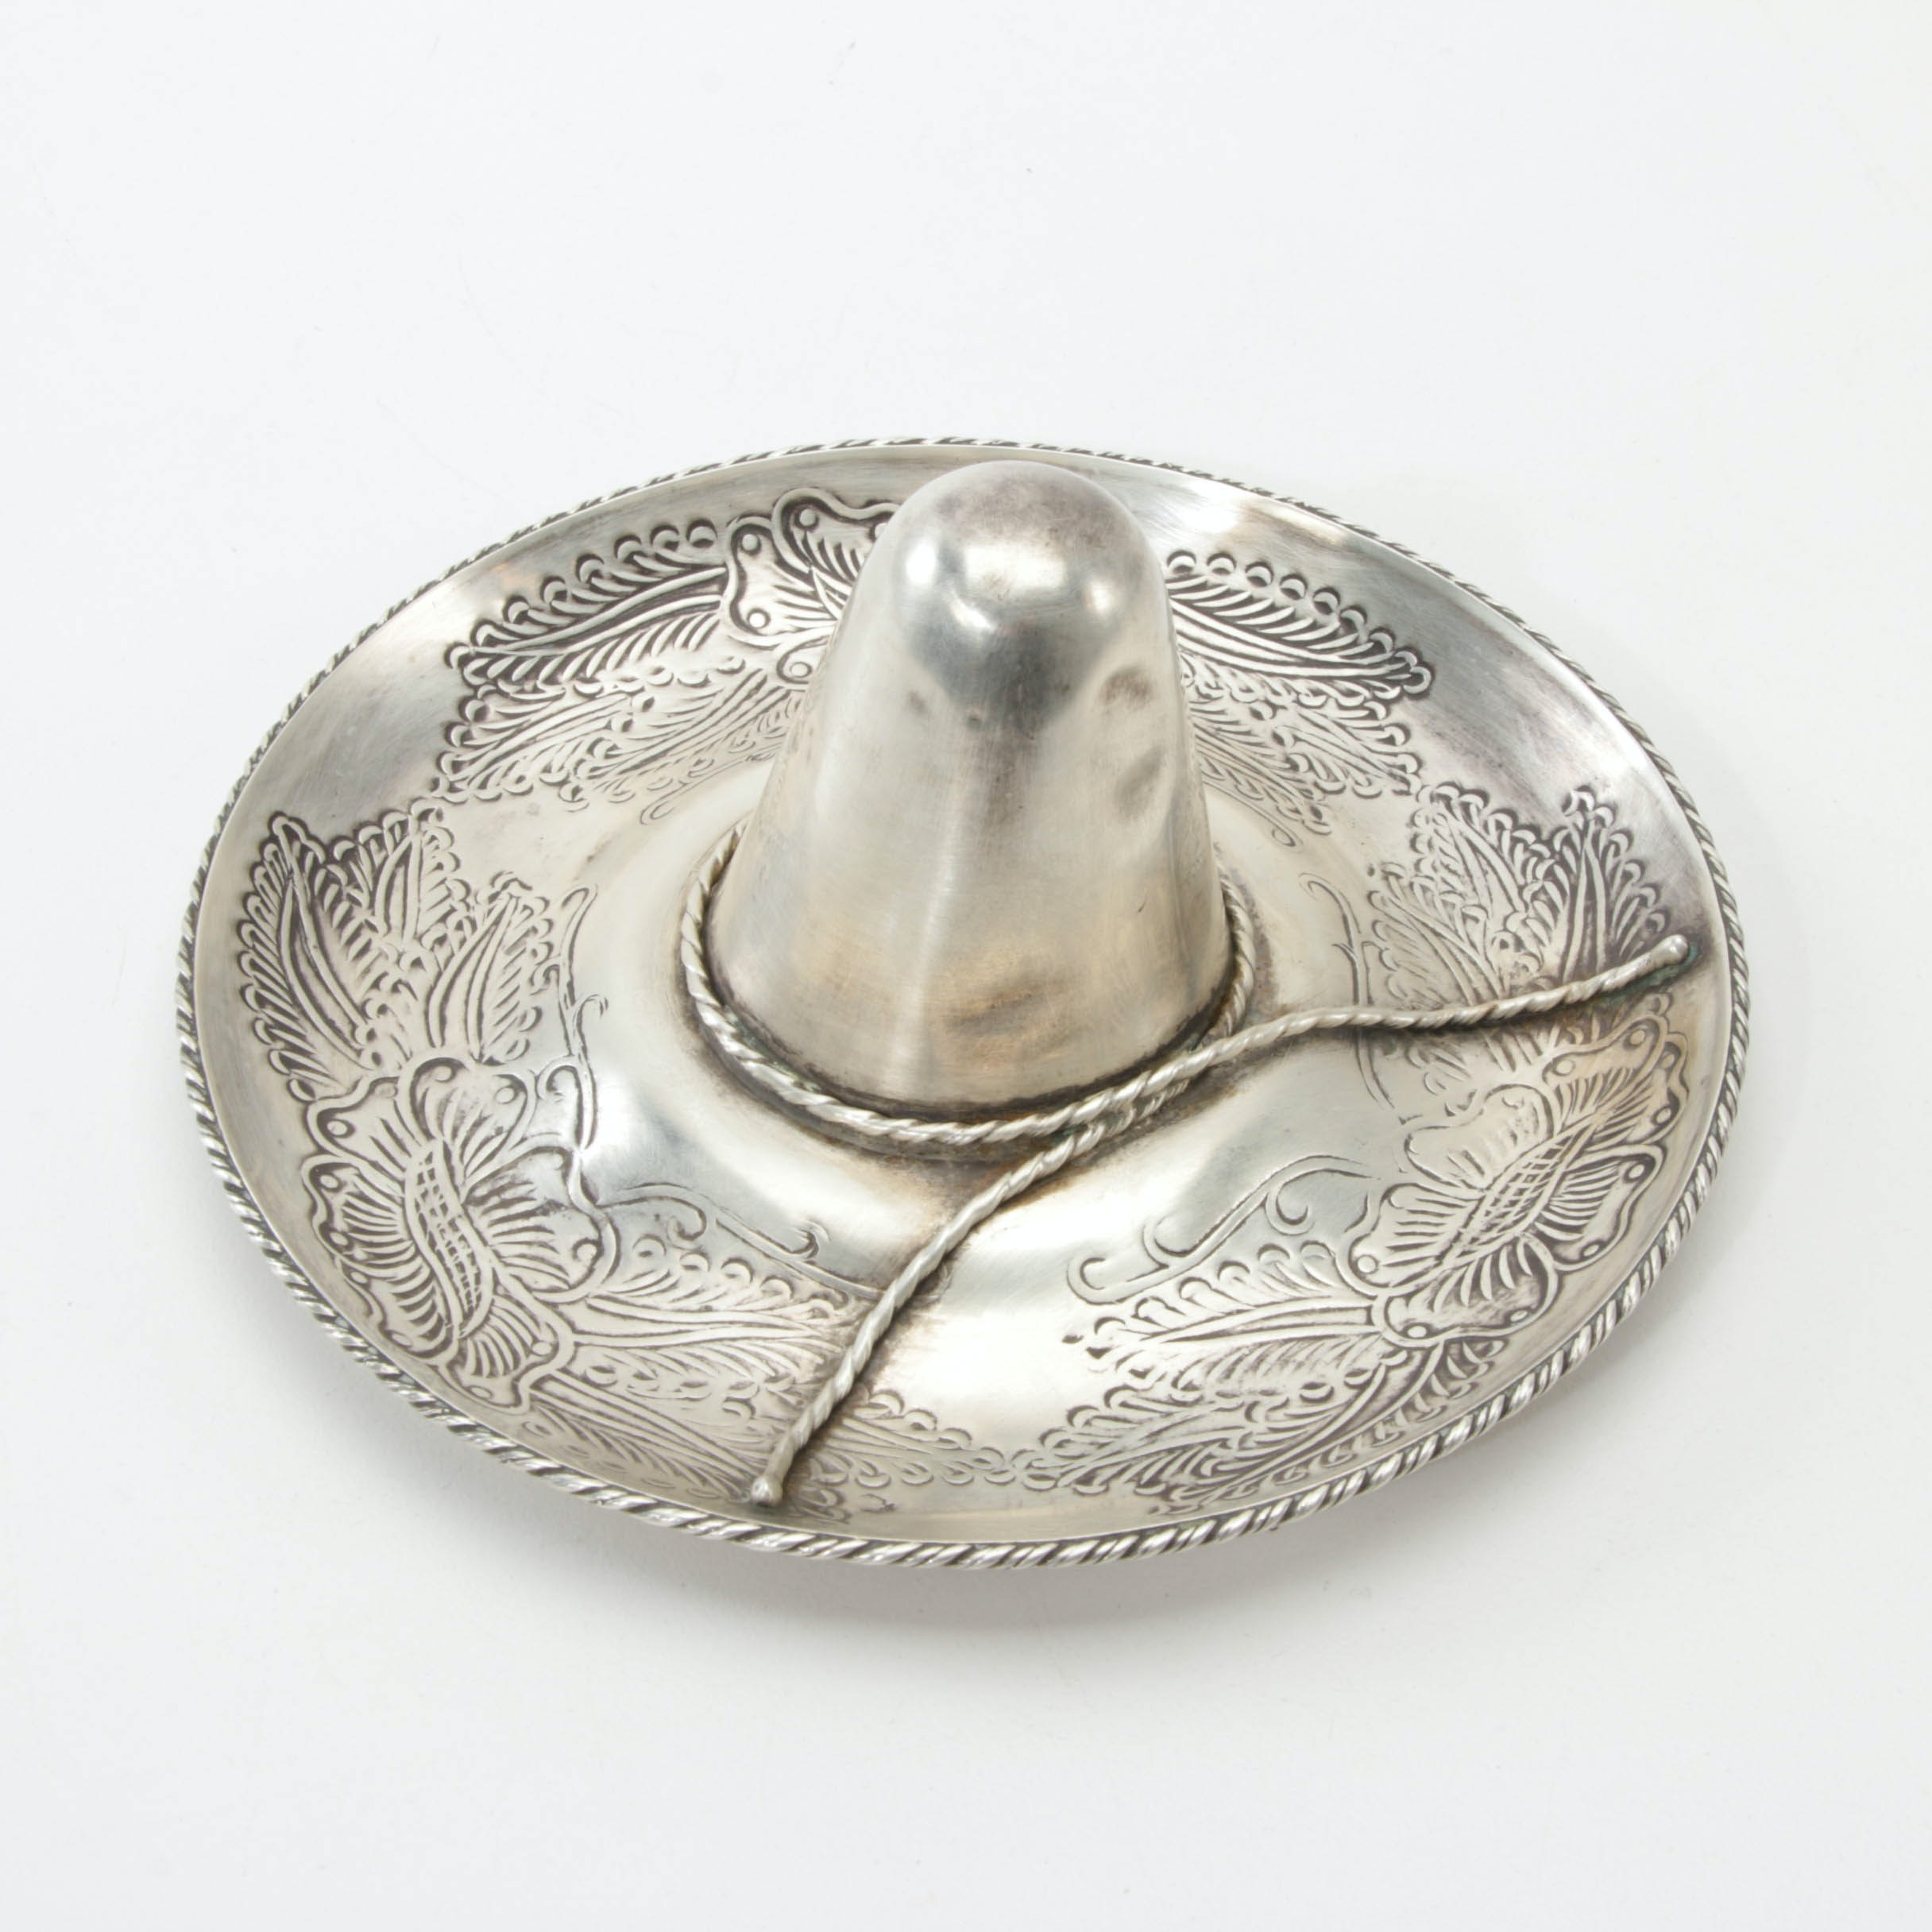 Mexican Sterling Silver Sombrero Figurine, Mid/Late 20th Century